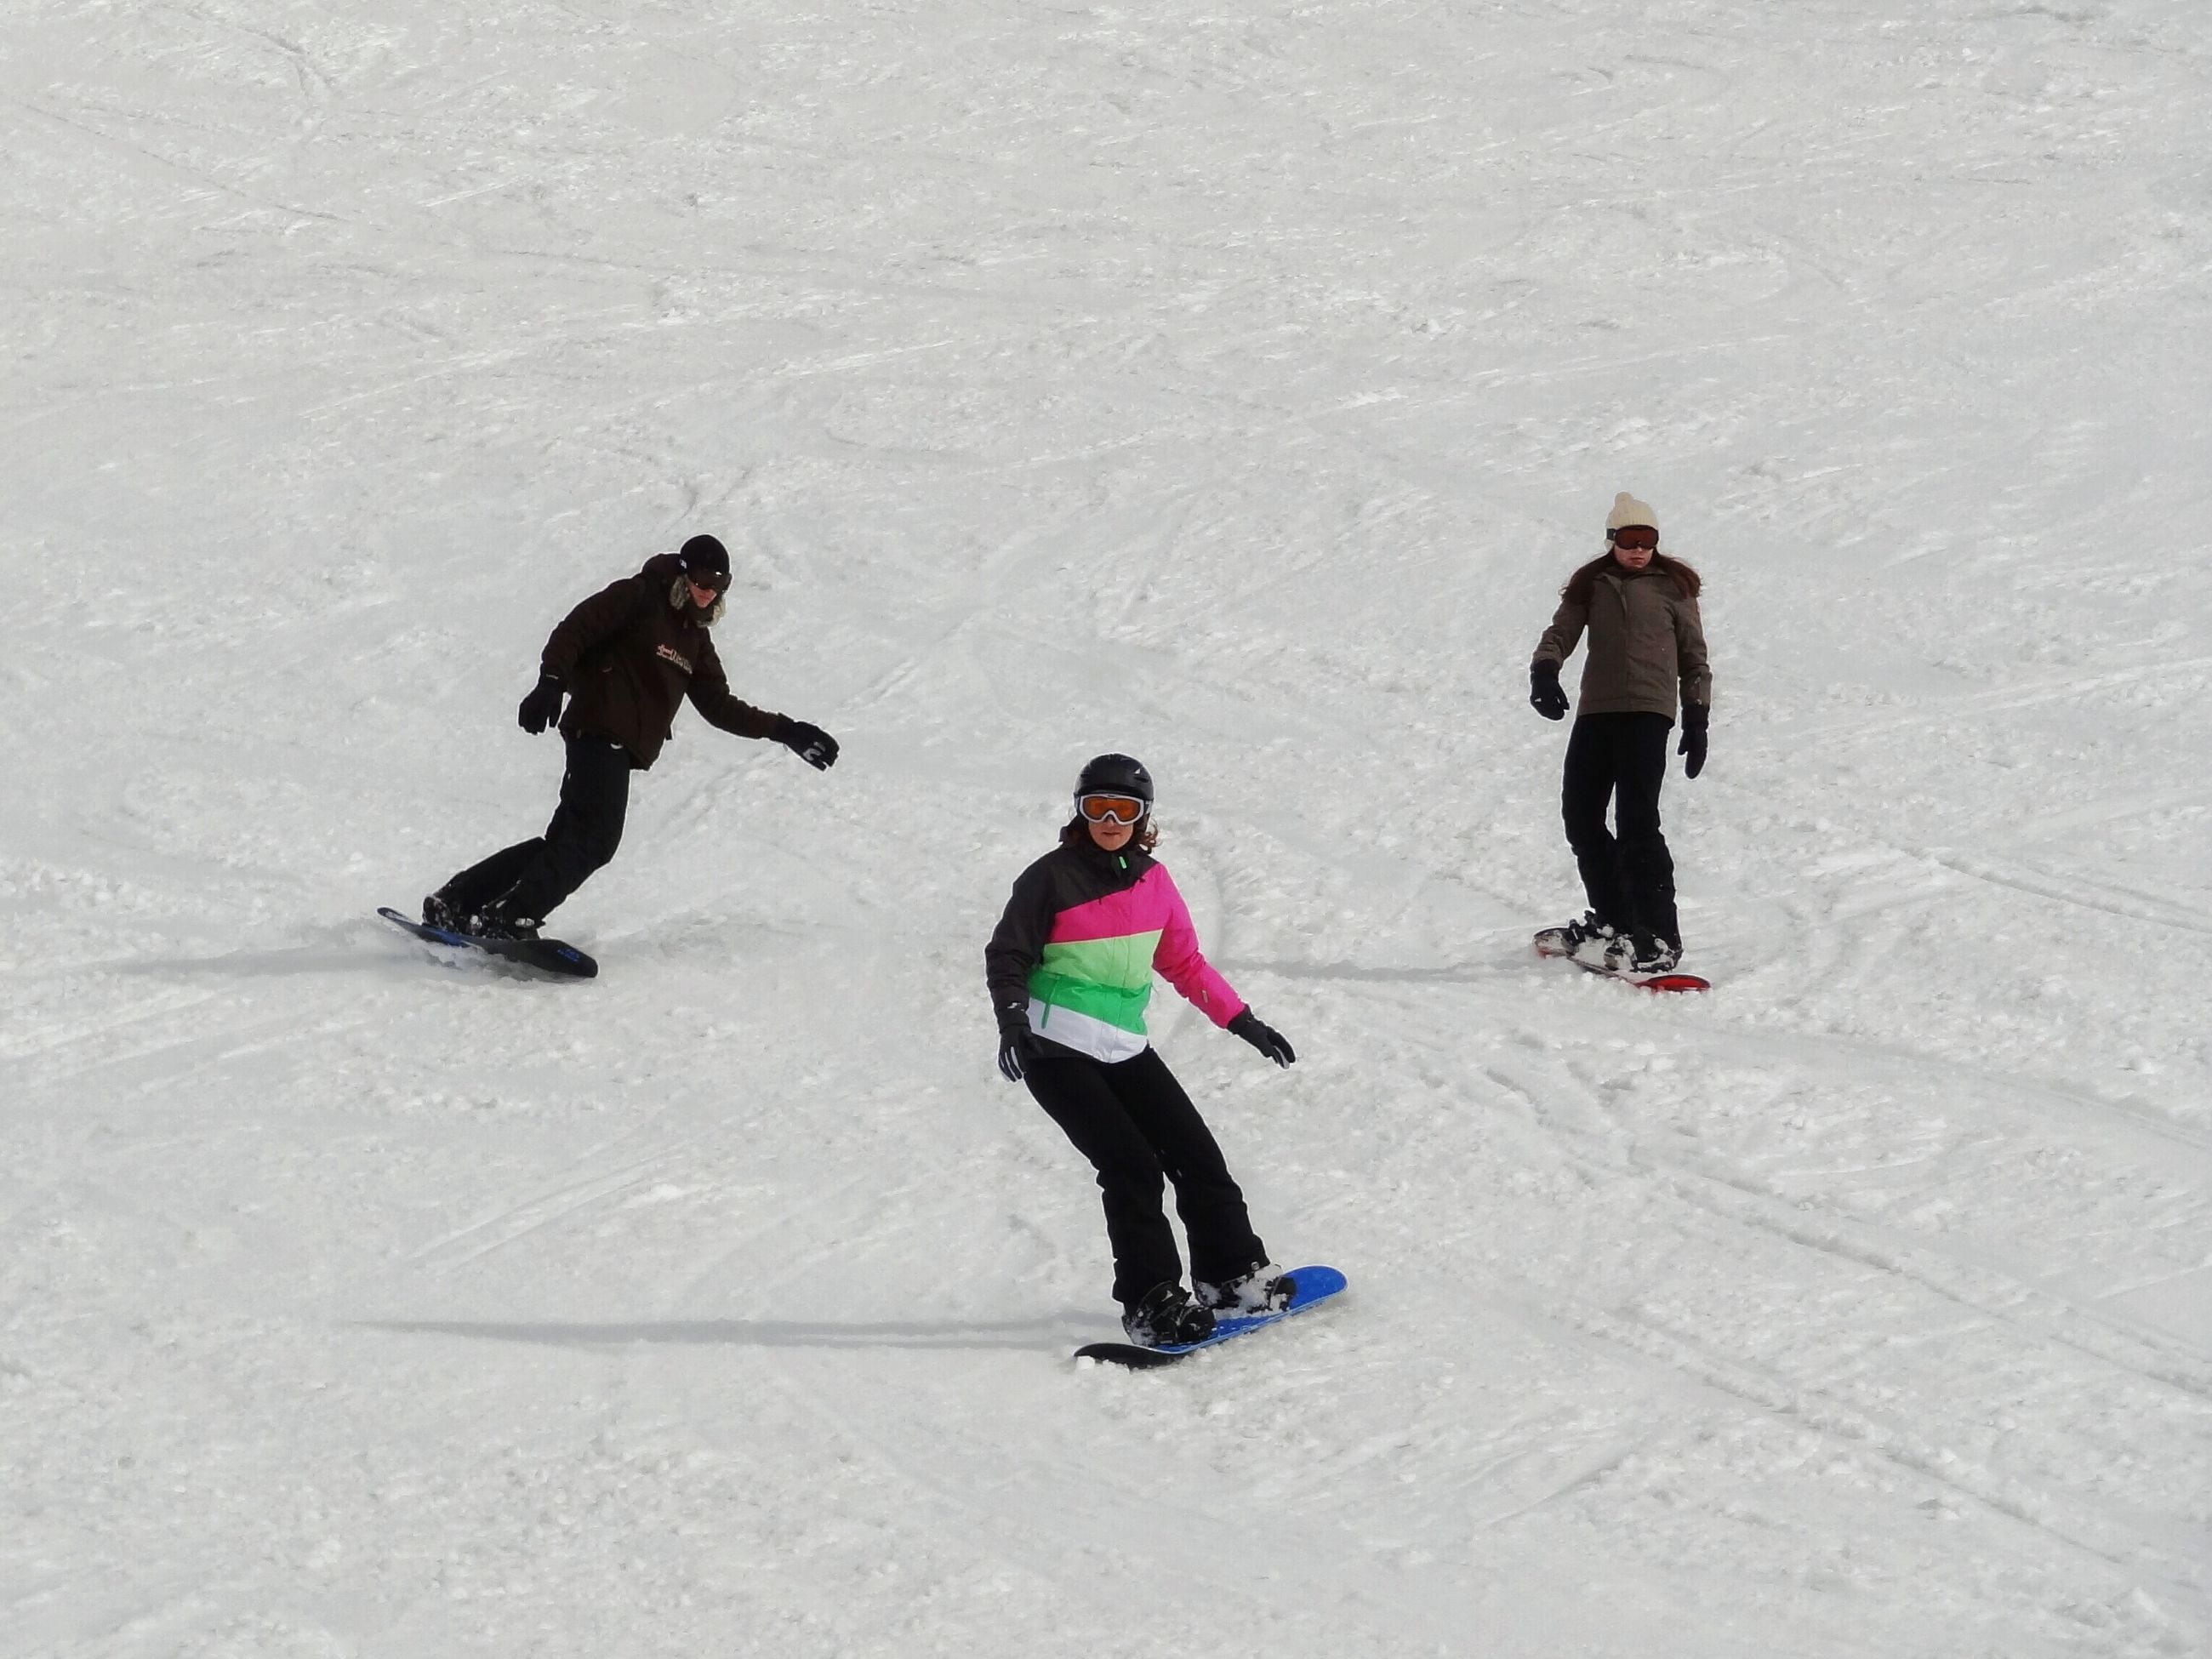 full length, lifestyles, leisure activity, walking, men, sport, high angle view, extreme sports, casual clothing, boys, enjoyment, snow, fun, day, childhood, mid-air, skill